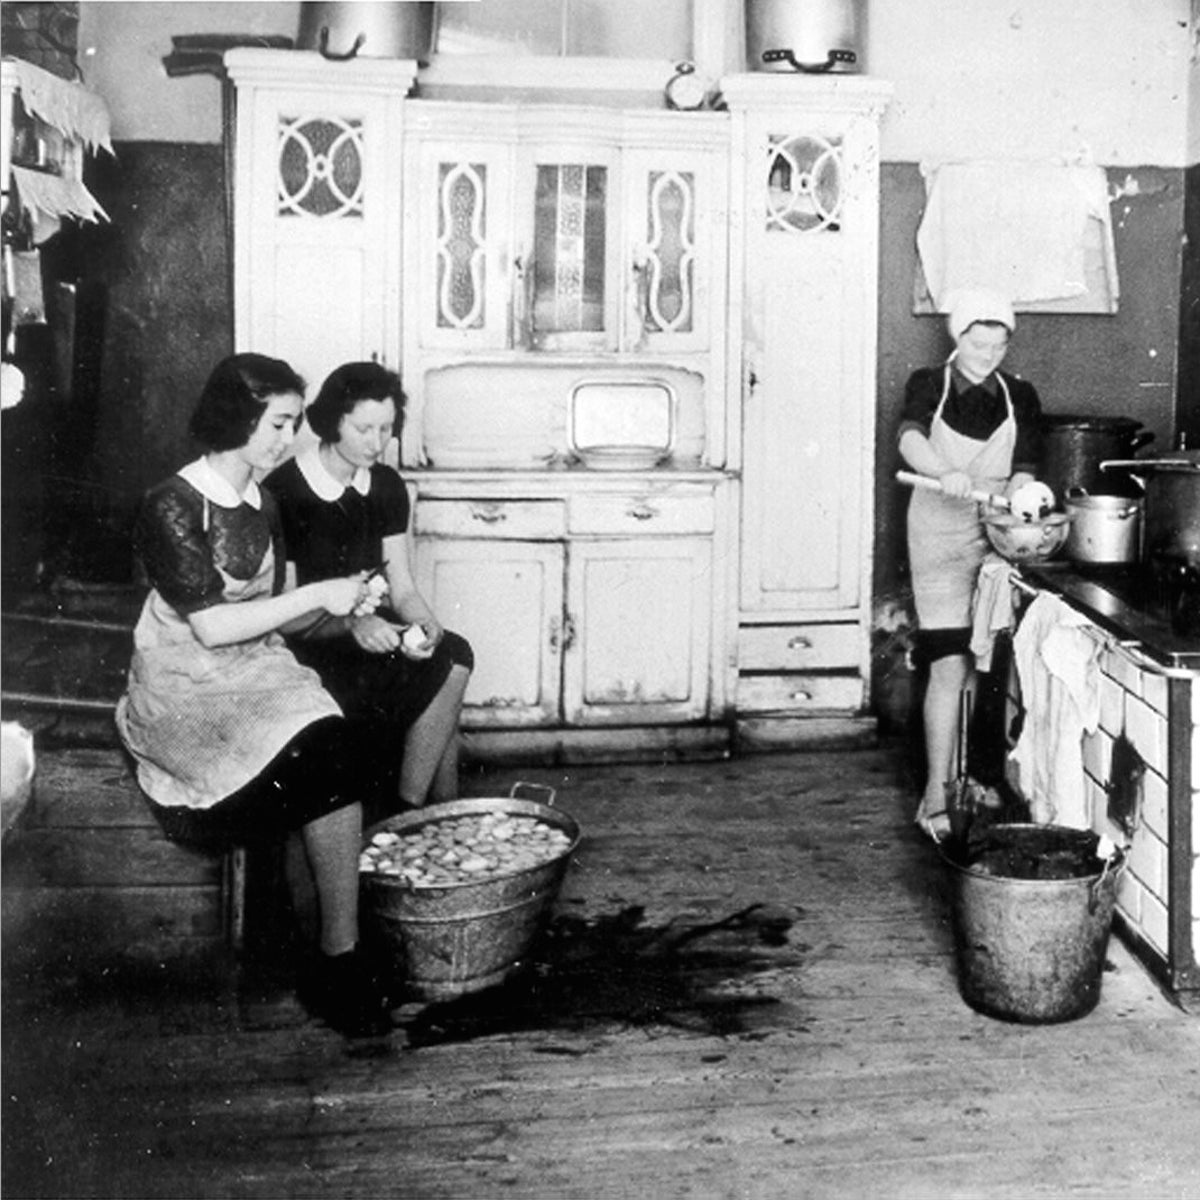 The kitchen of the Jewish orphanage in the Warsaw Ghetto.